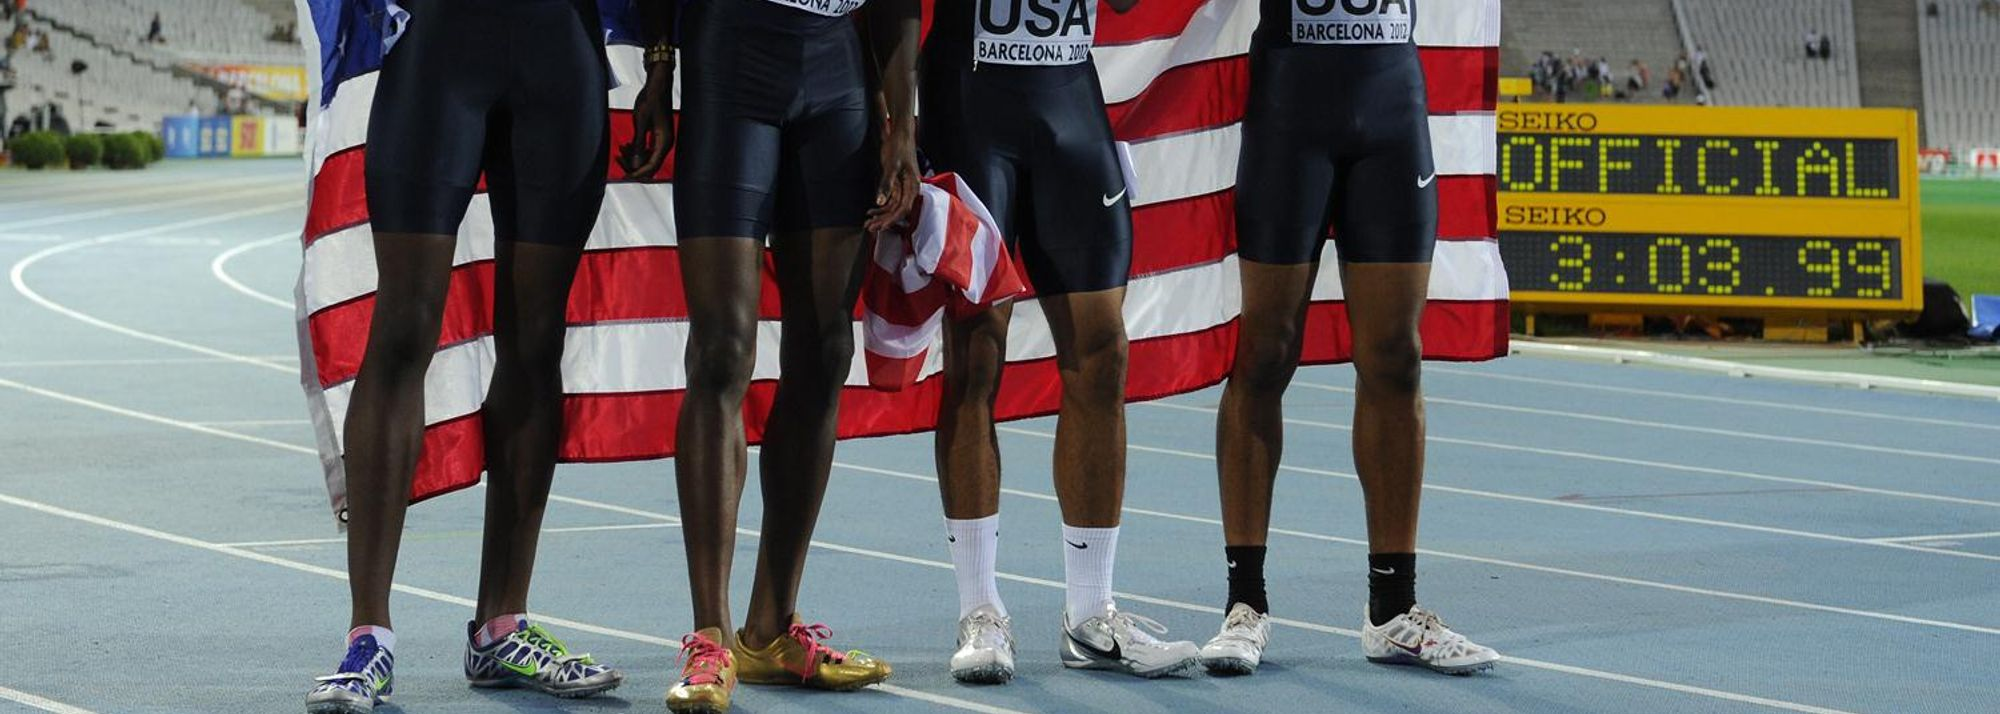 The United States of America completed a sweep of all four relay titles here in Barcelona as the men's 4x400m team of Quincy Downing, Aldrich Bailey, Chidi Okezie and Arman Hall clocked a new World Junior leading time 3:03.99.